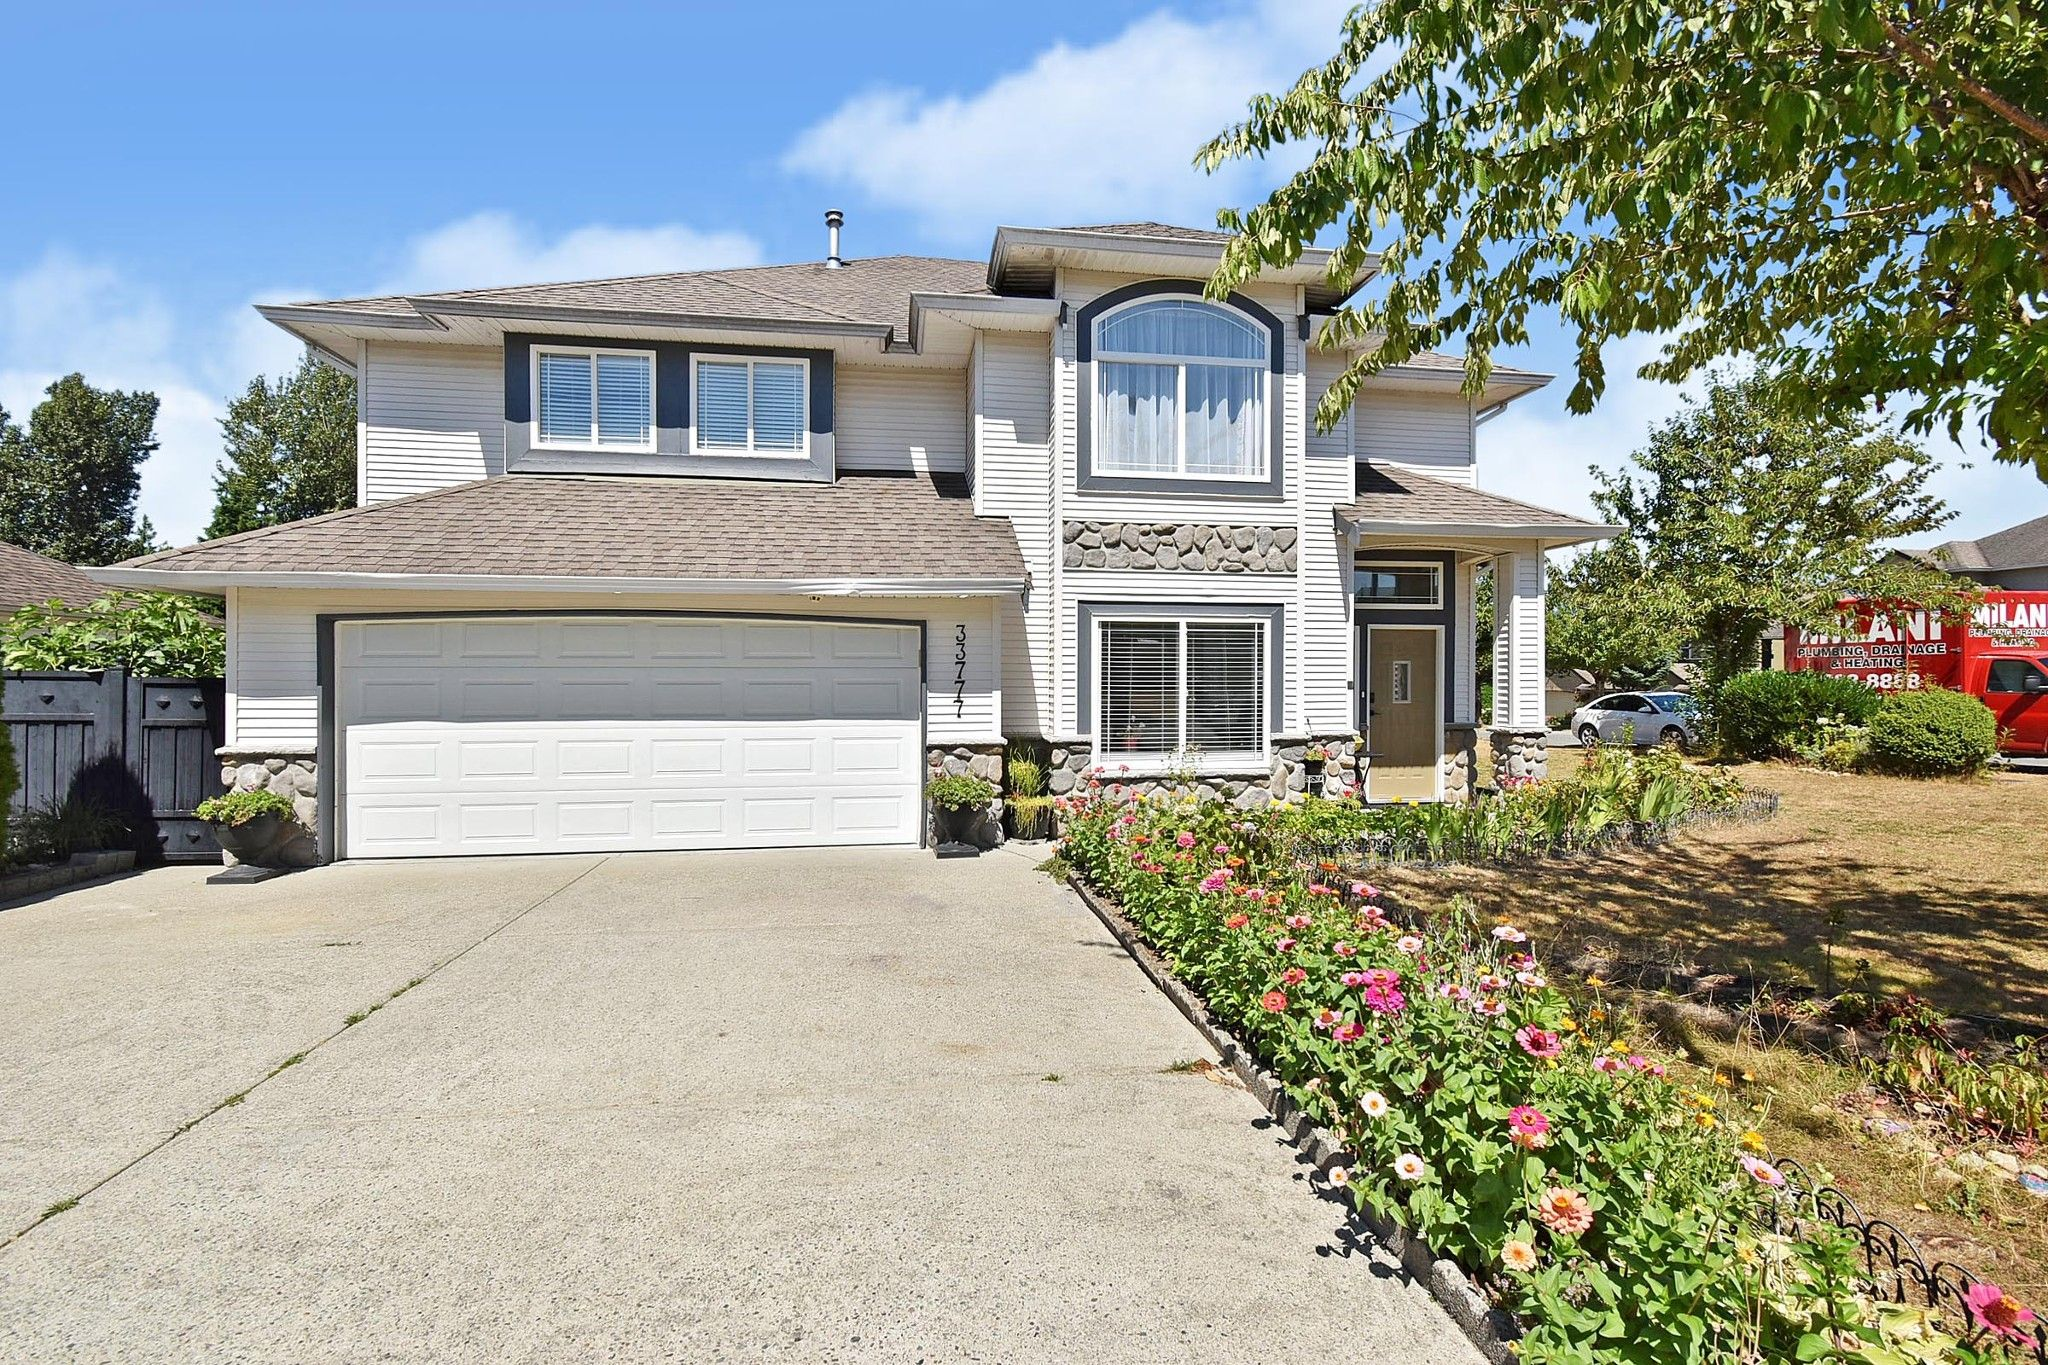 Main Photo: 33777 VERES TERRACE in Mission: Mission BC House for sale : MLS®# R2608825